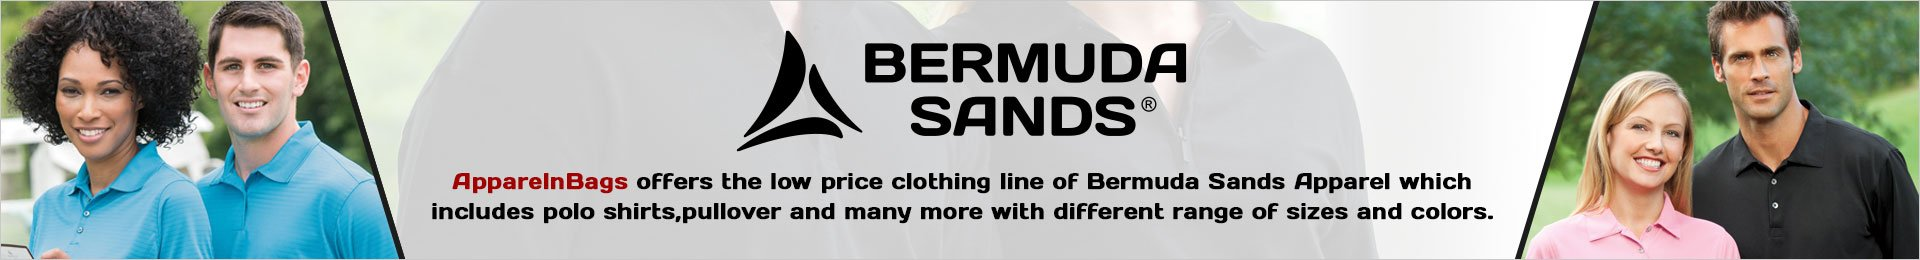 Bermuda Sands Apparel